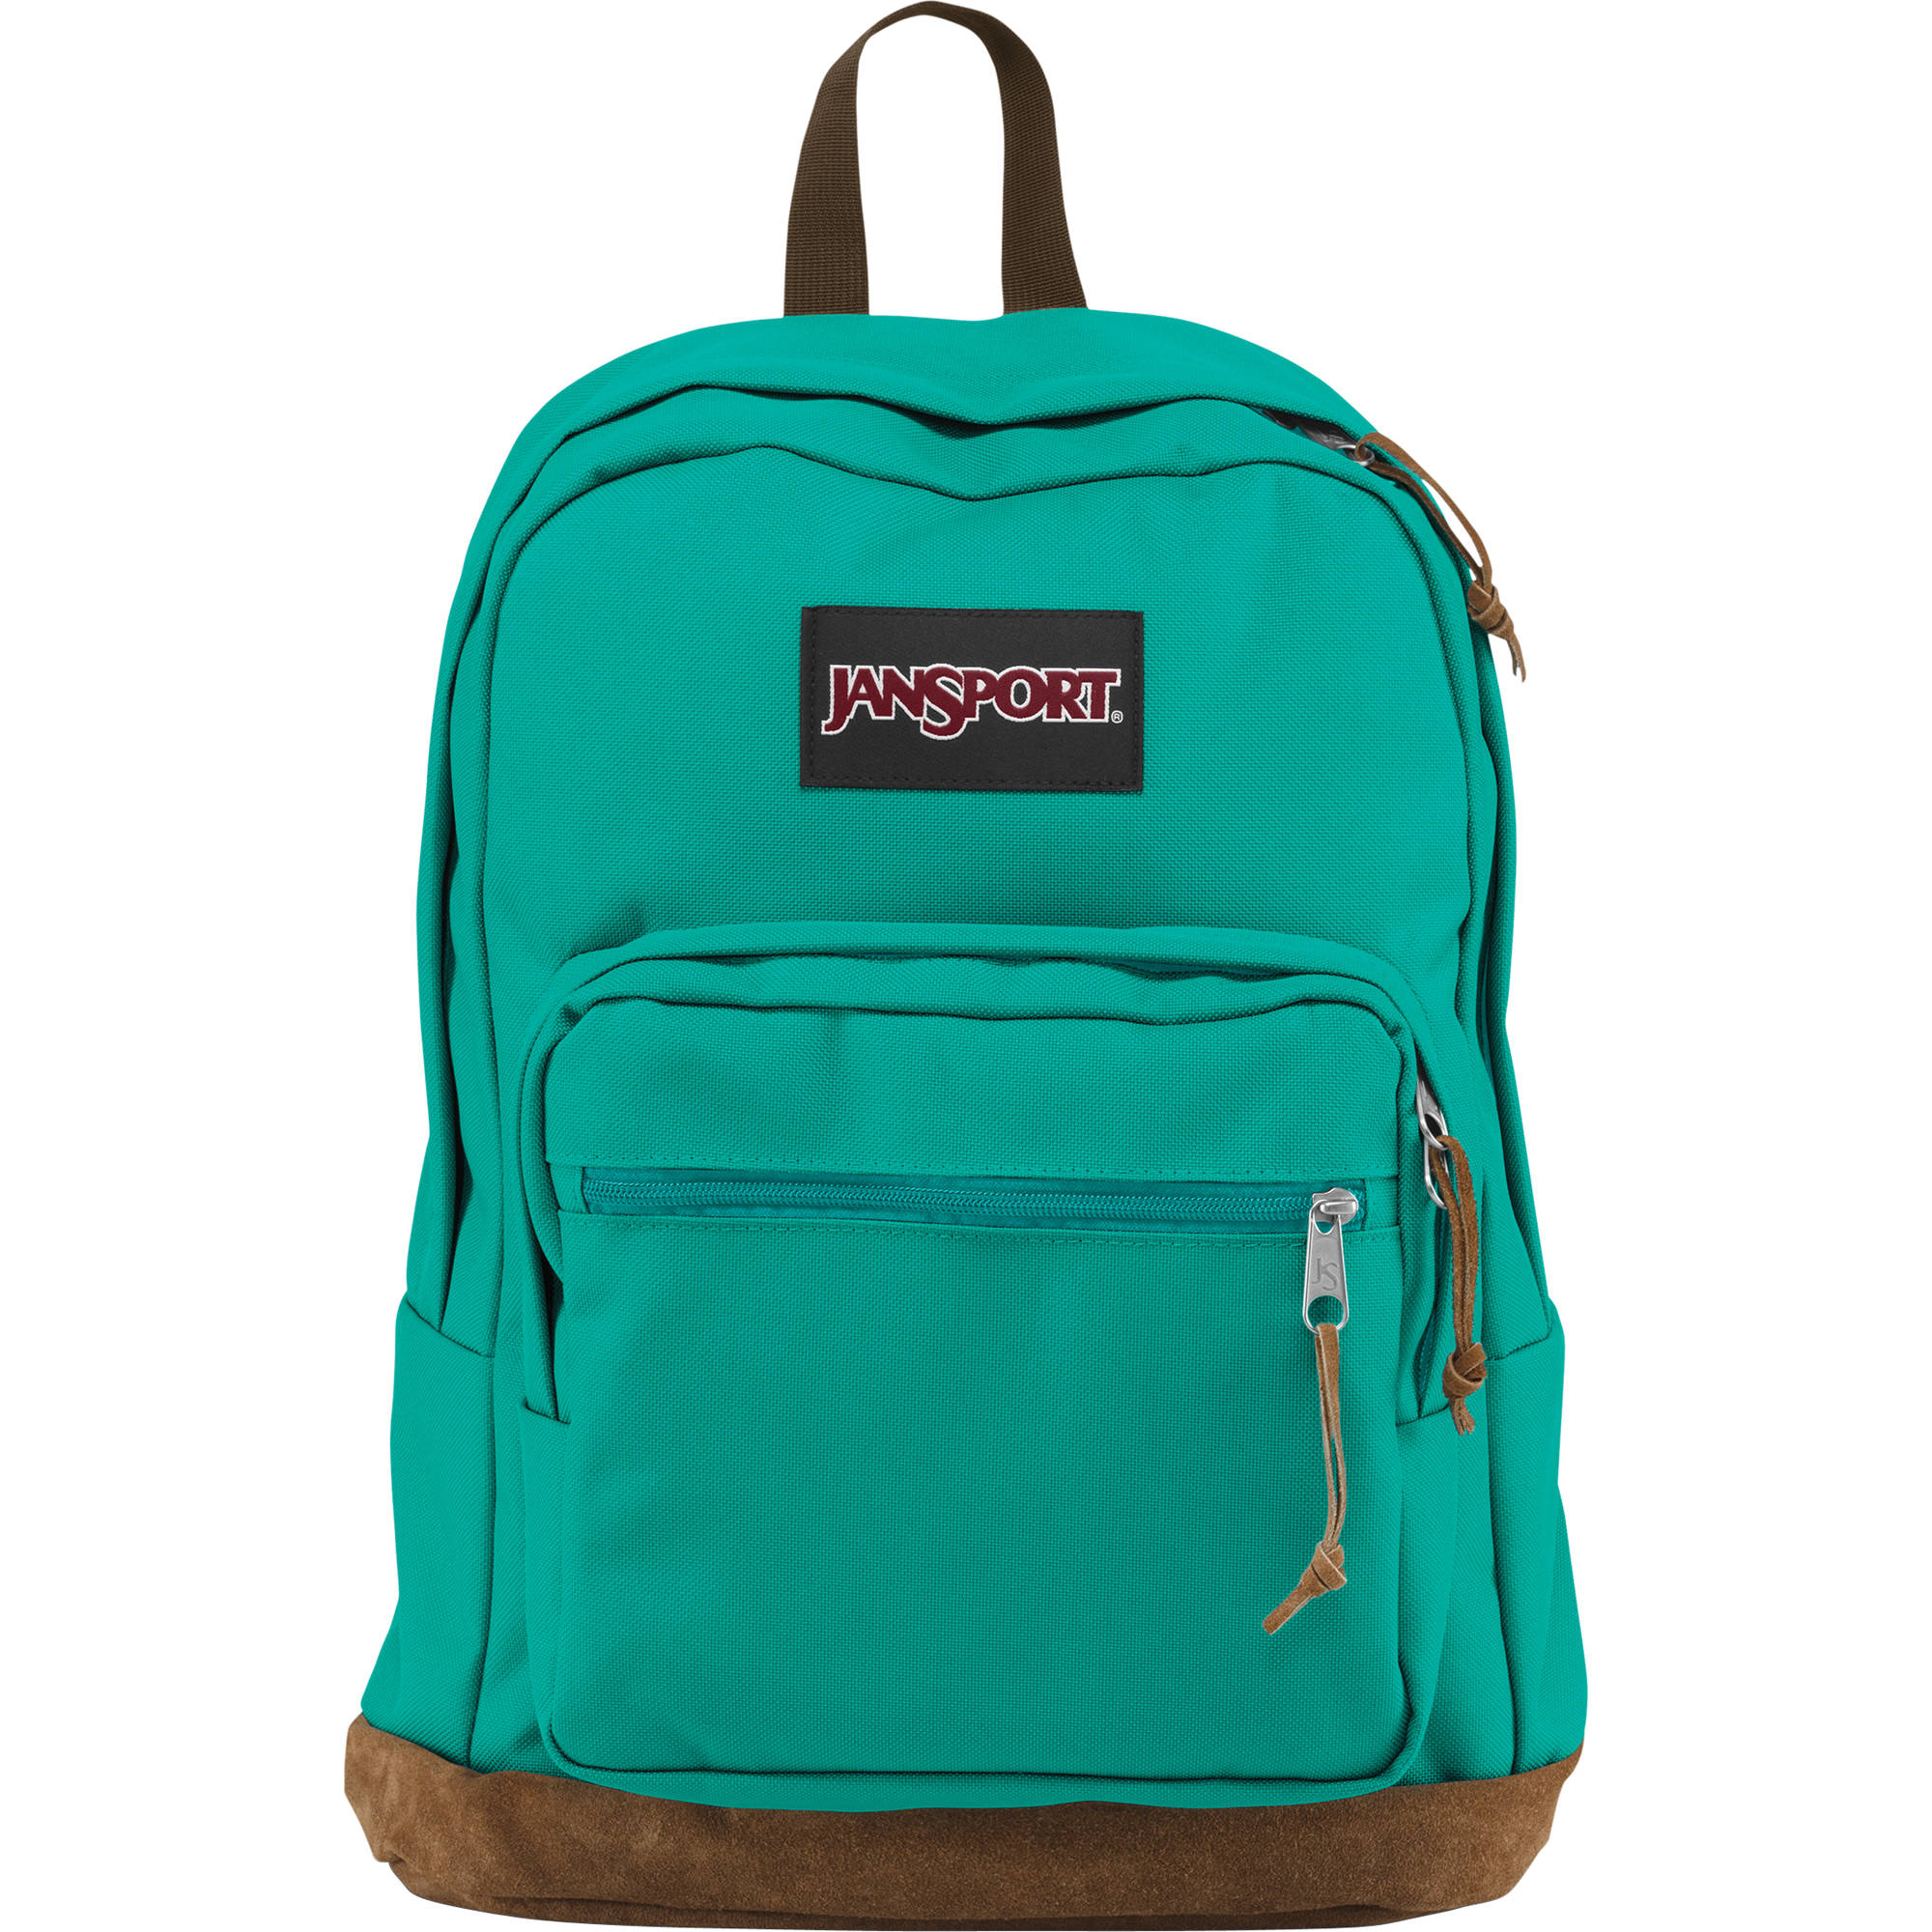 Jansport Right Backpack RbxudMtE